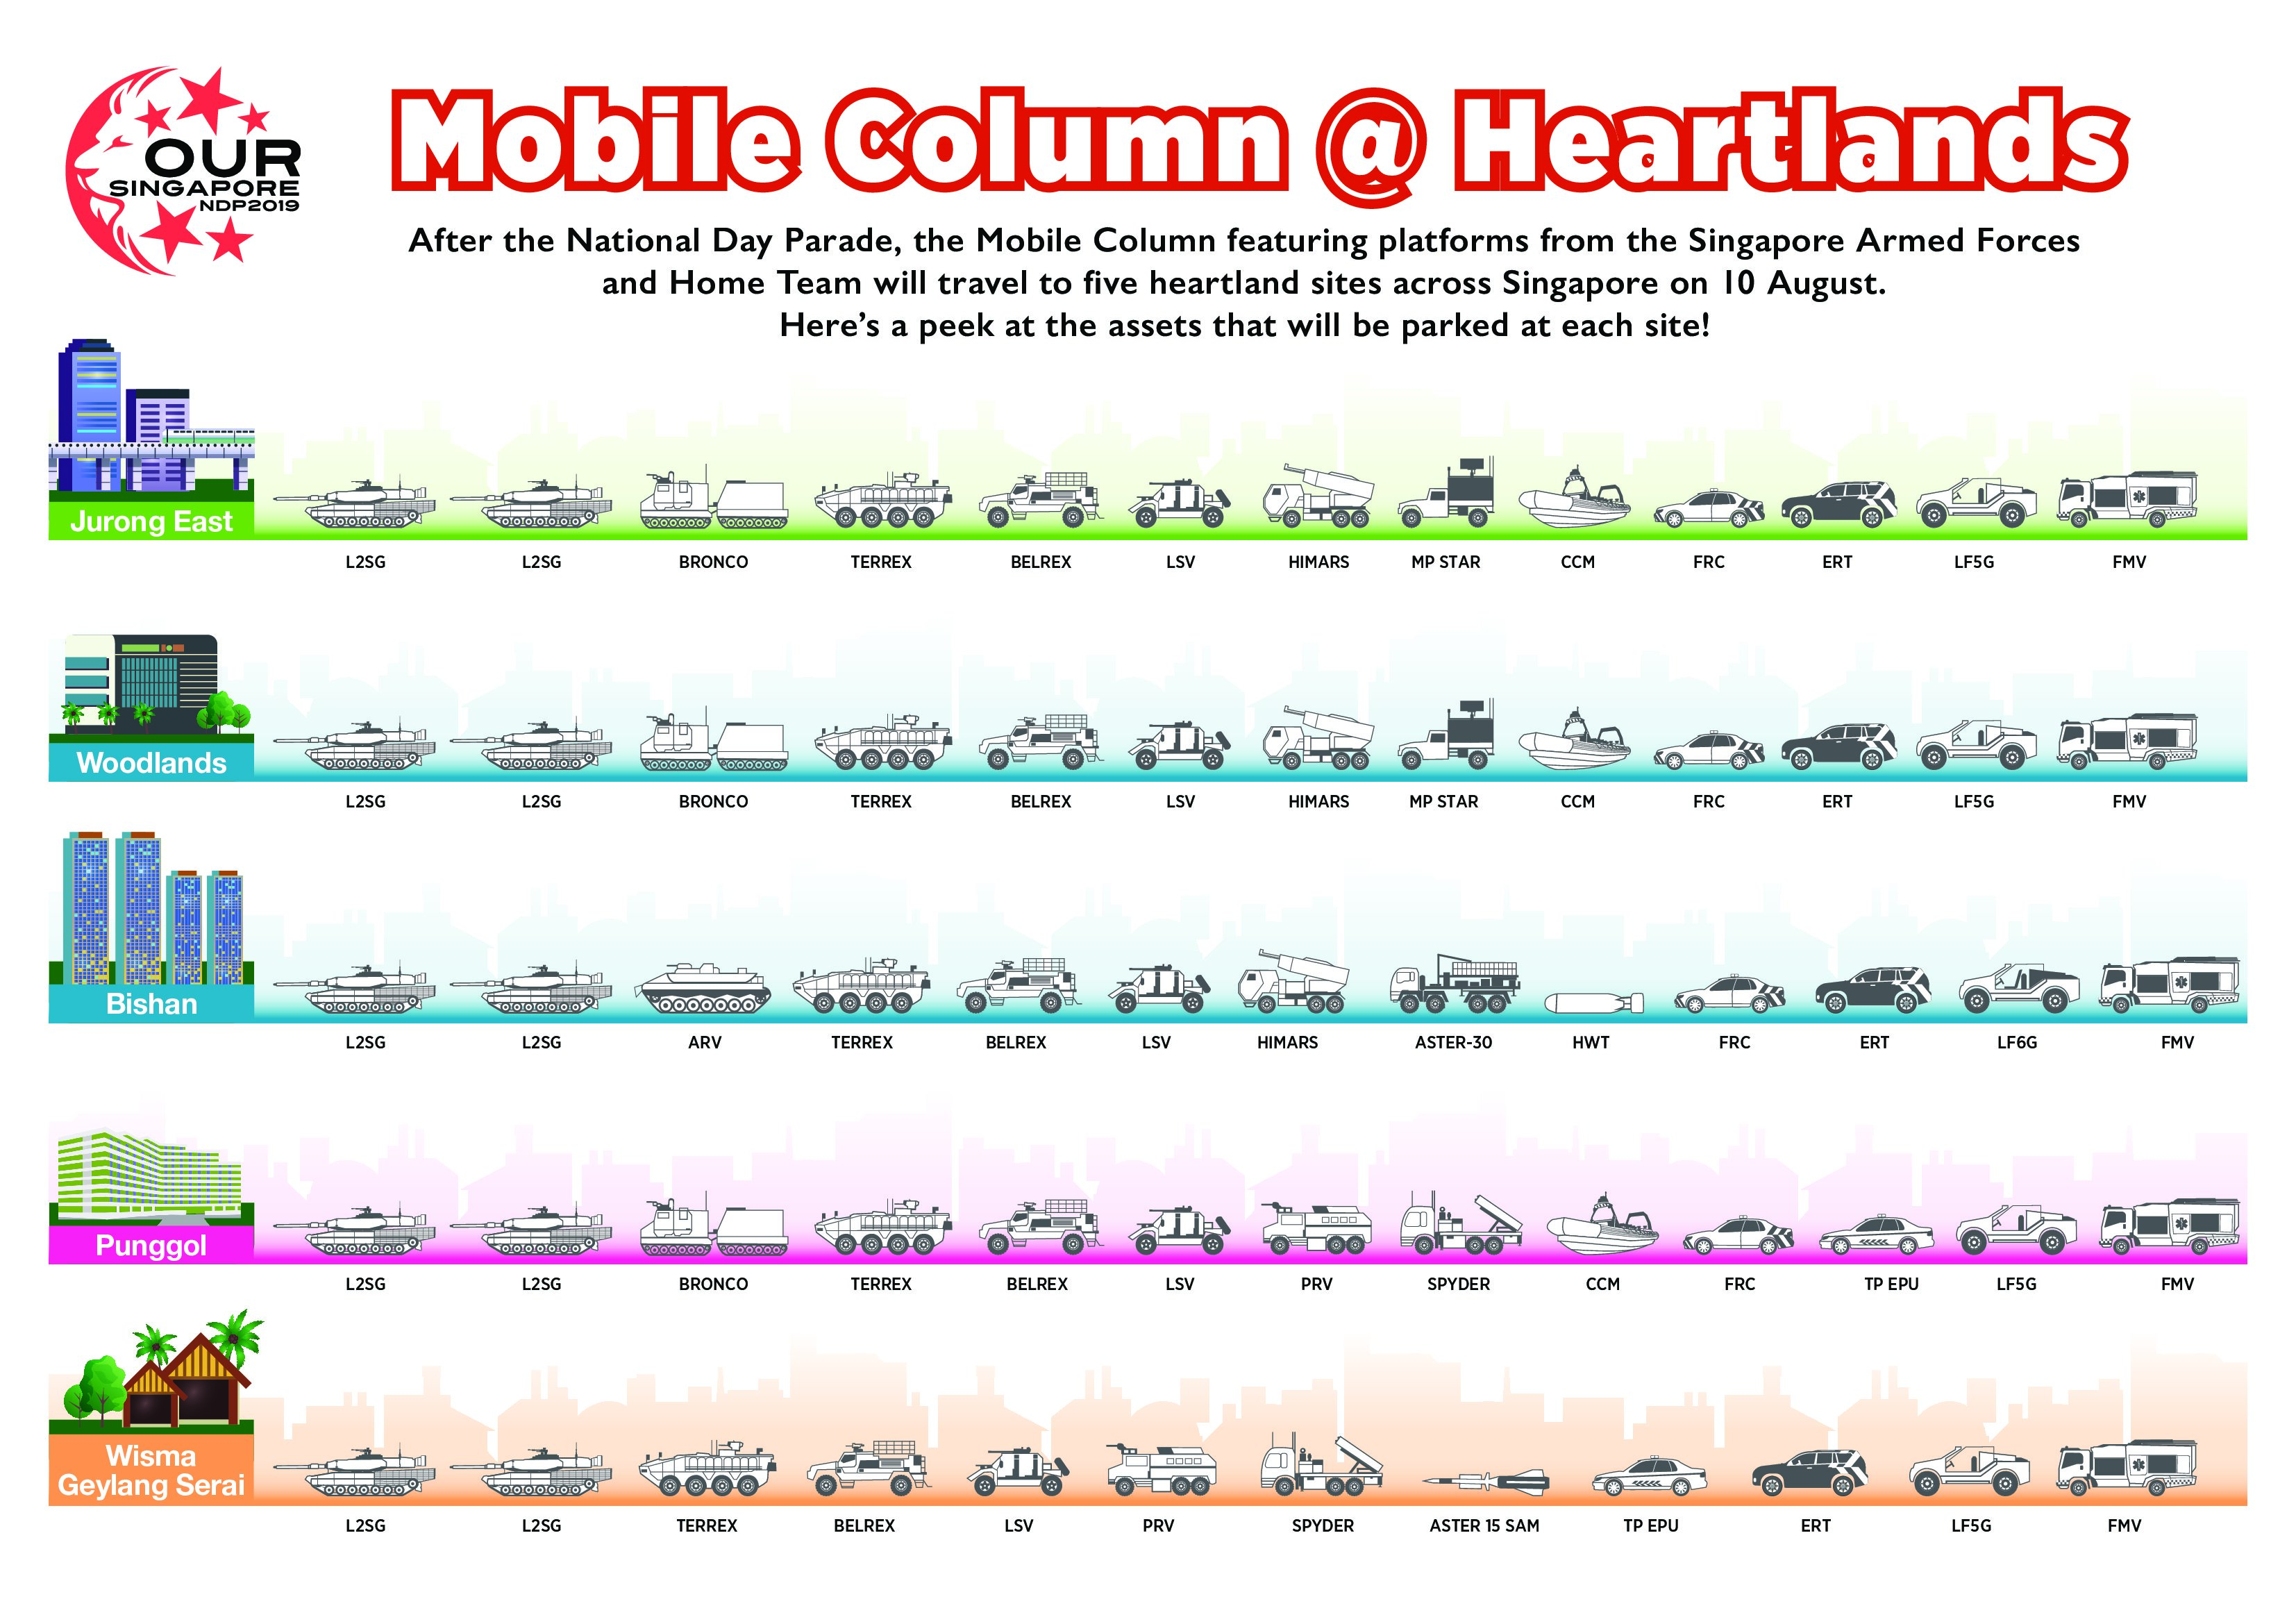 20190808 19 July 2019  - Mobile Column at Heartlands Vehicles (Infographic).jpg